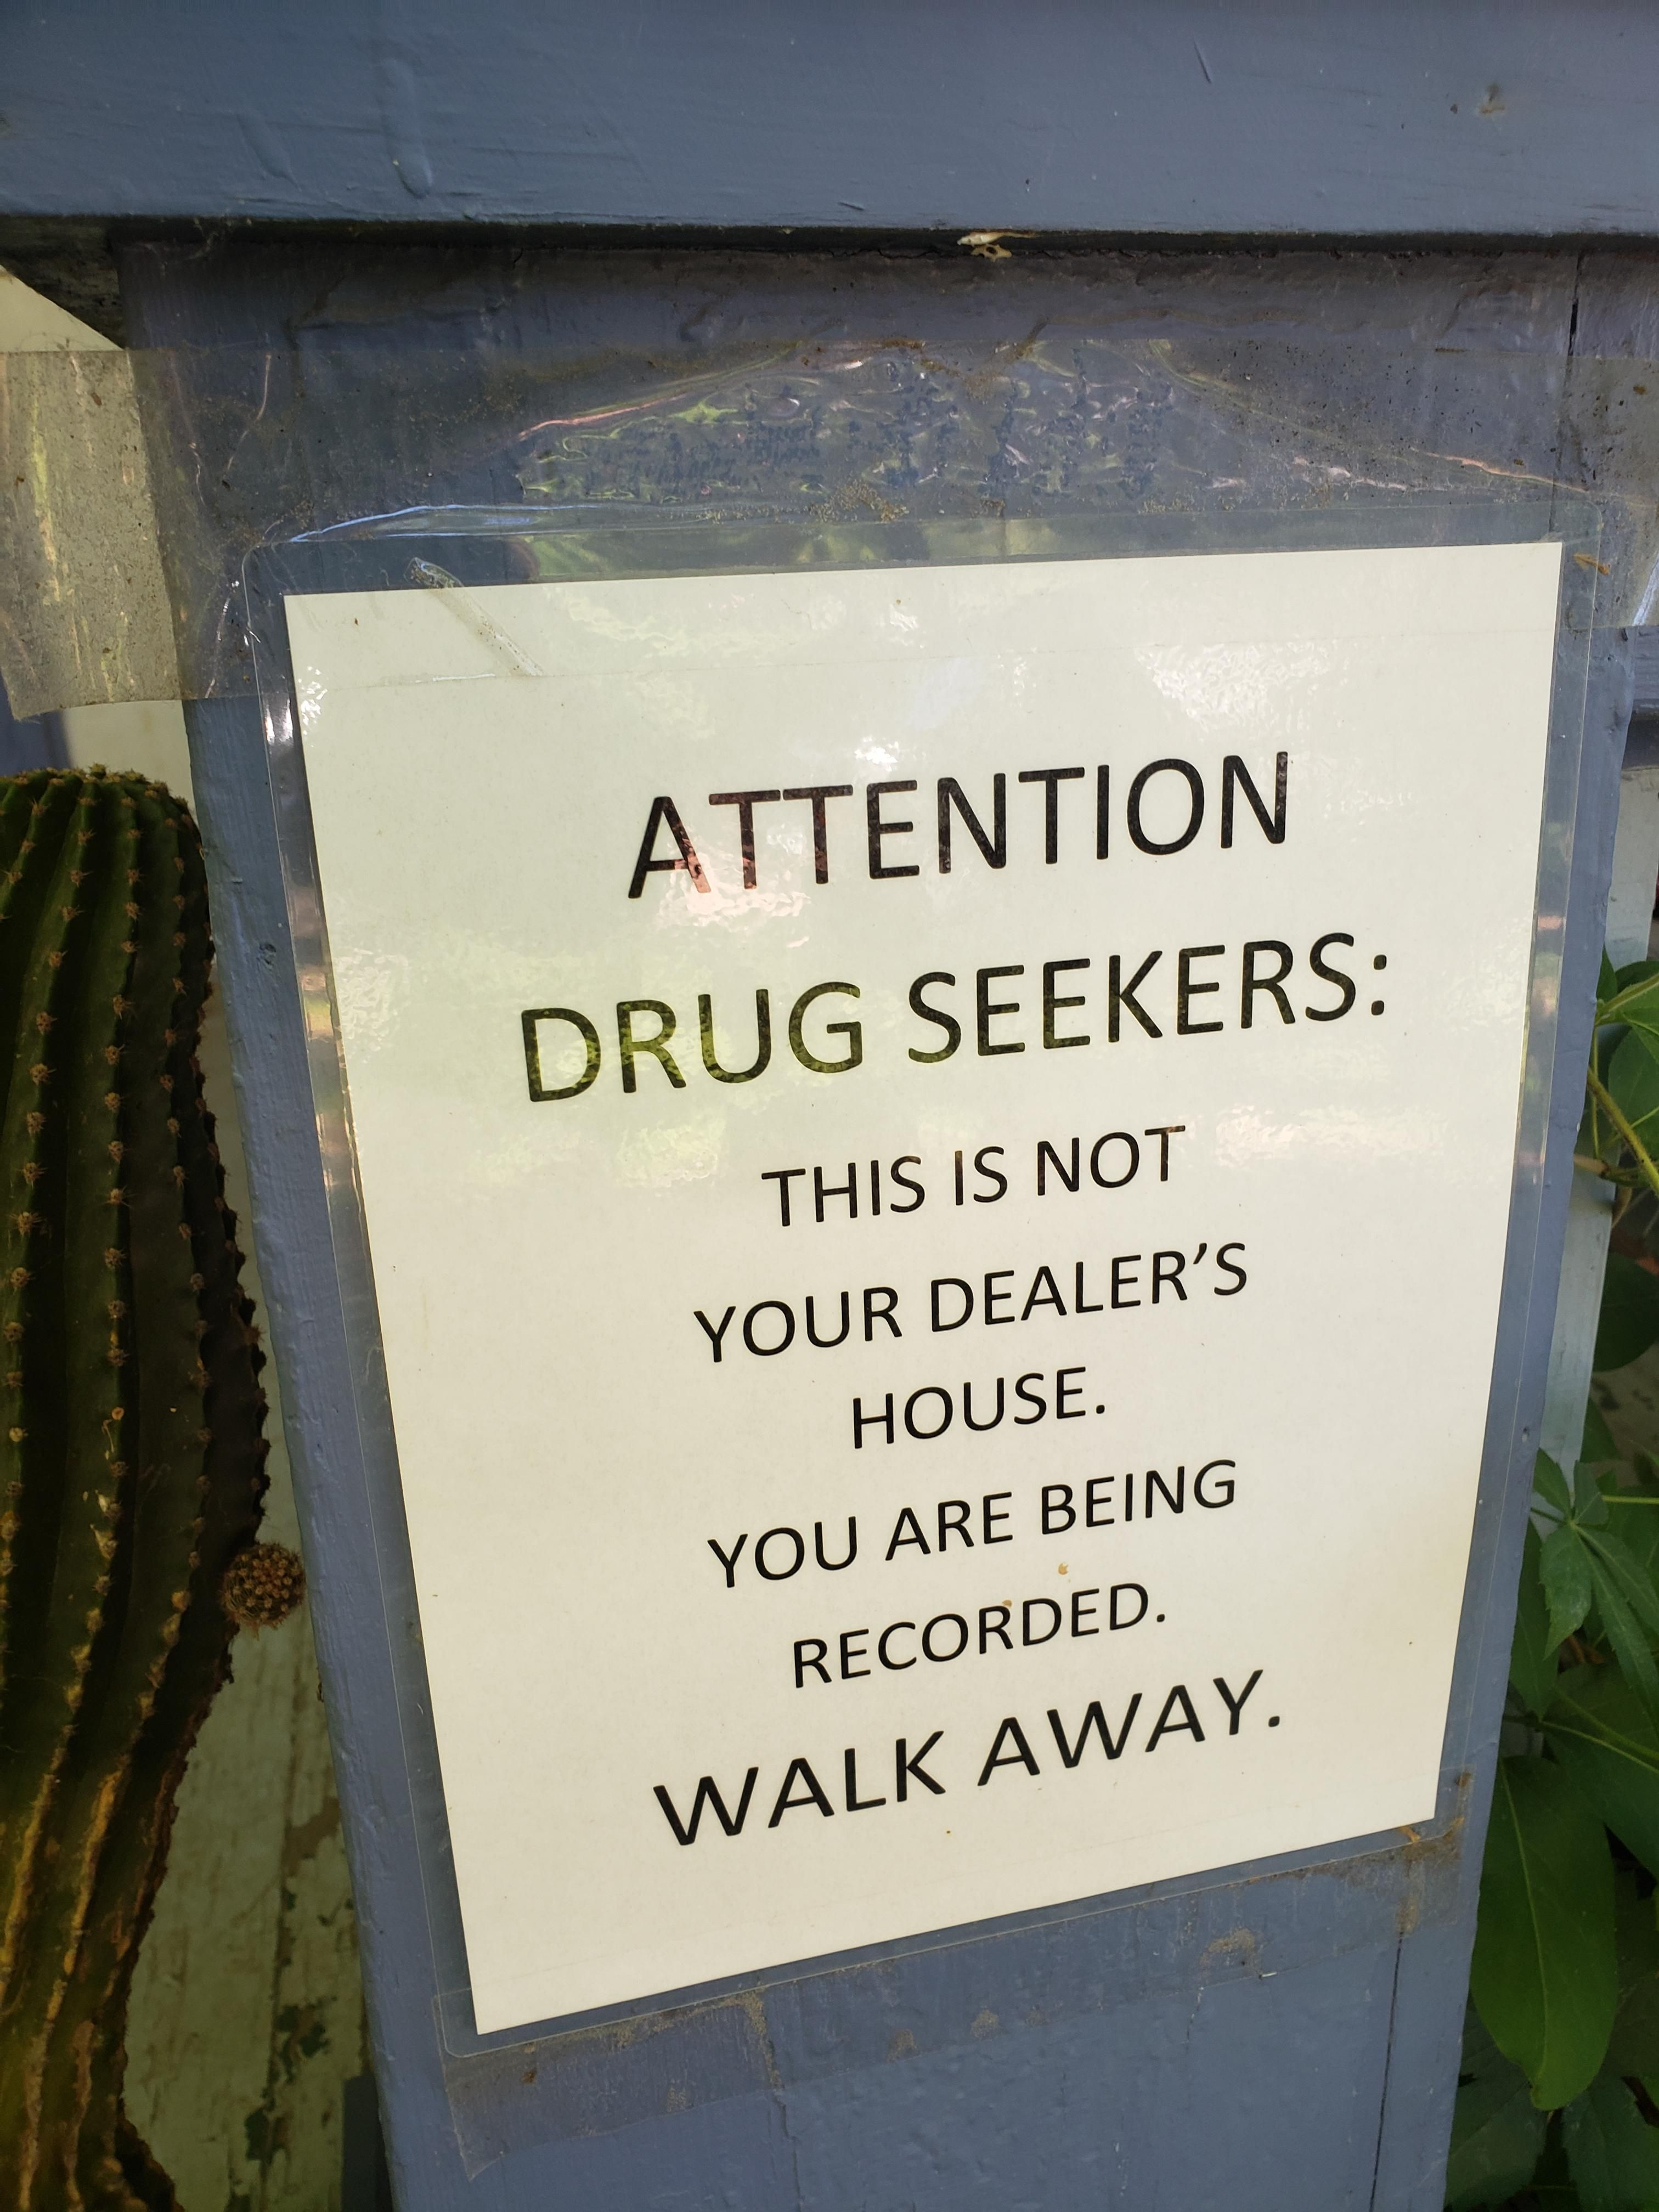 My friends had to post this on their front porch after getting too many unexpected visitors